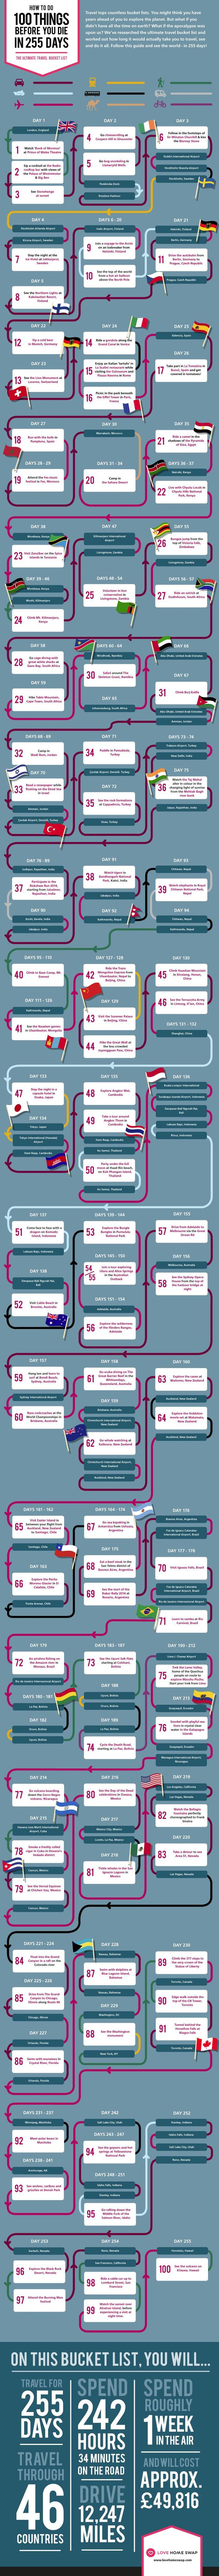 The Ultimate Travel Bucket List: How To Do 100 Things Before You Die In 255 Days #Infographic #Travel